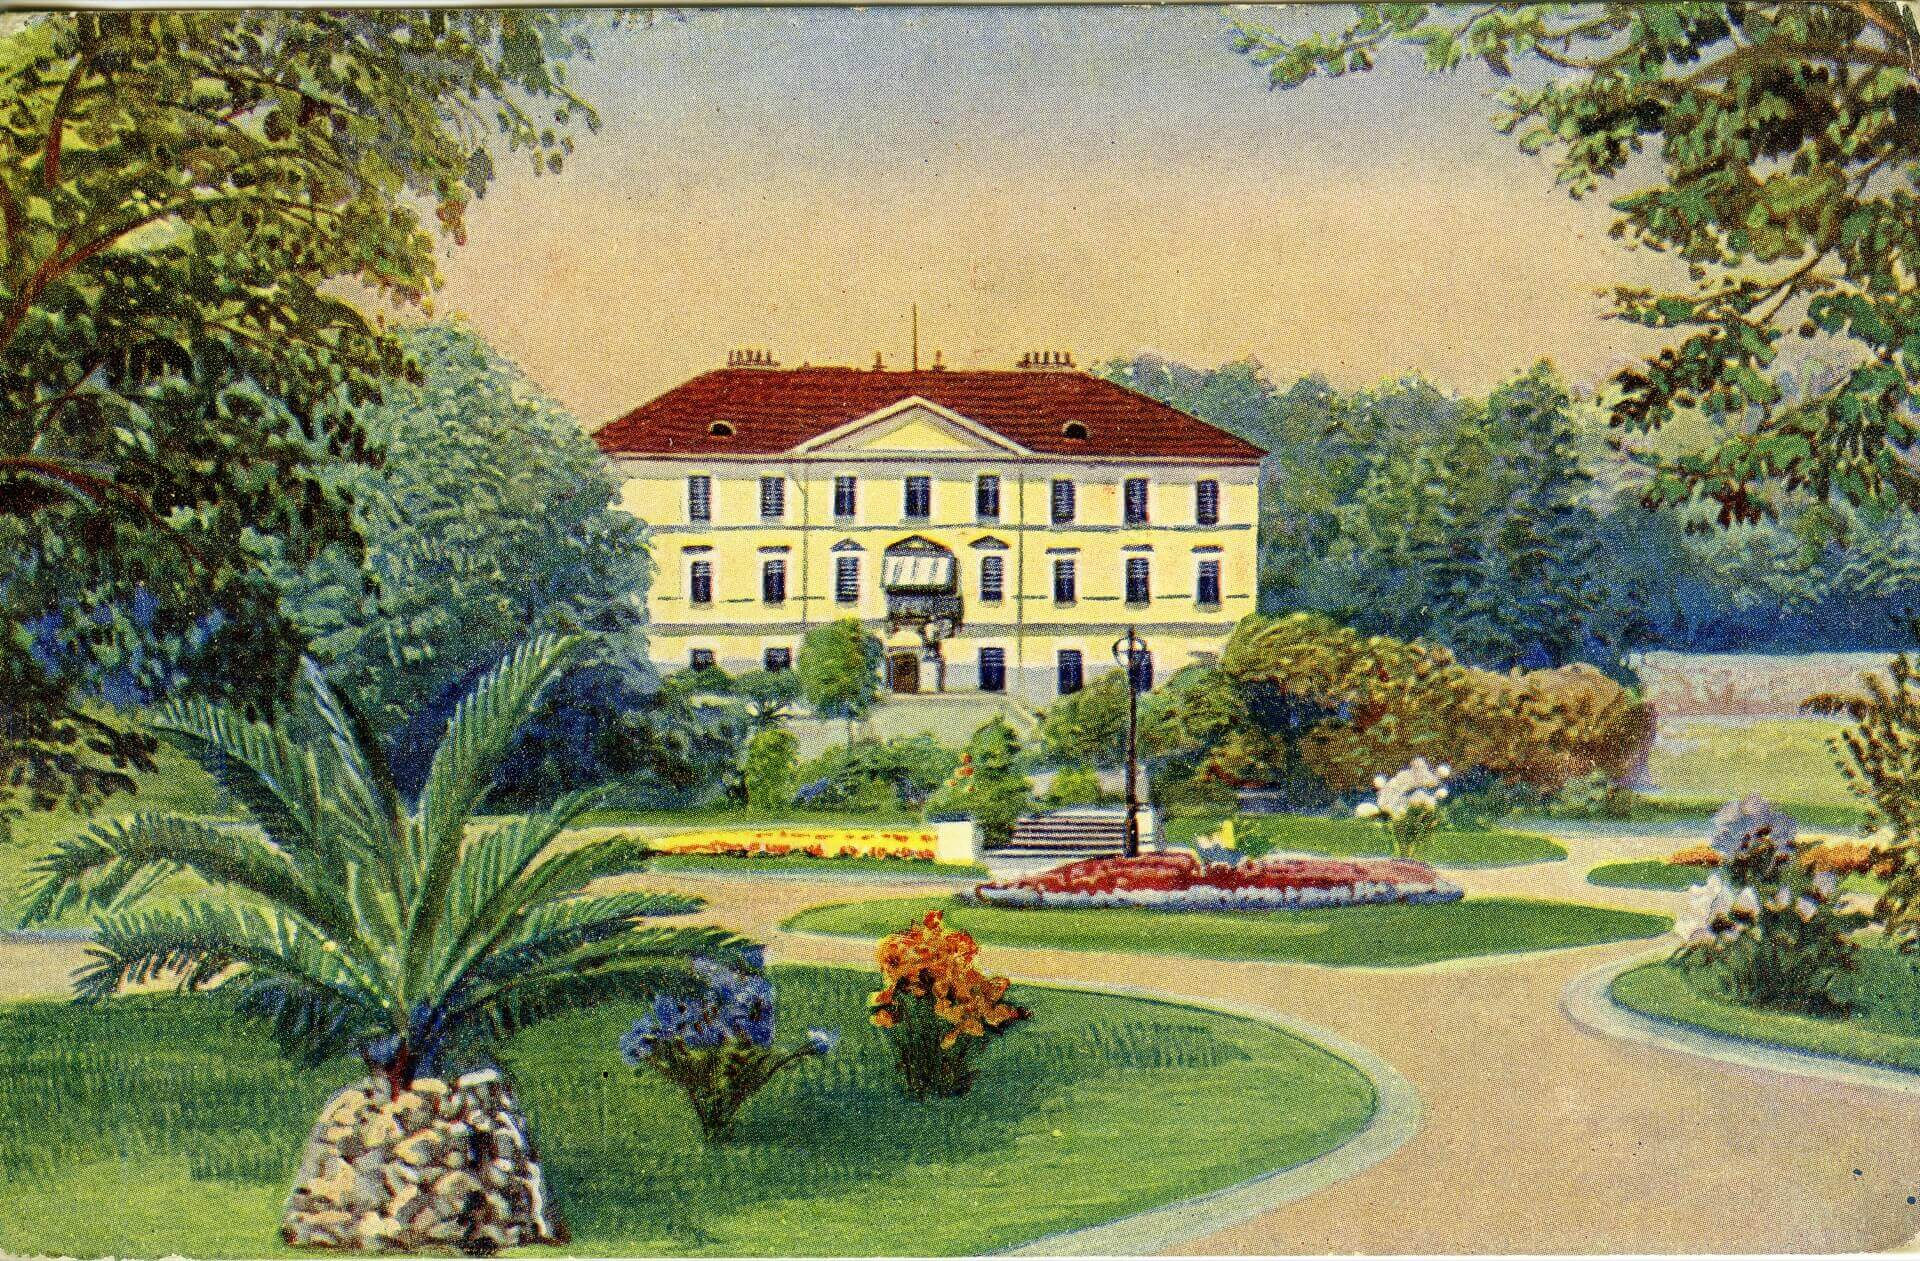 Postcard_of_Tivoli_Castle_1916.jpg